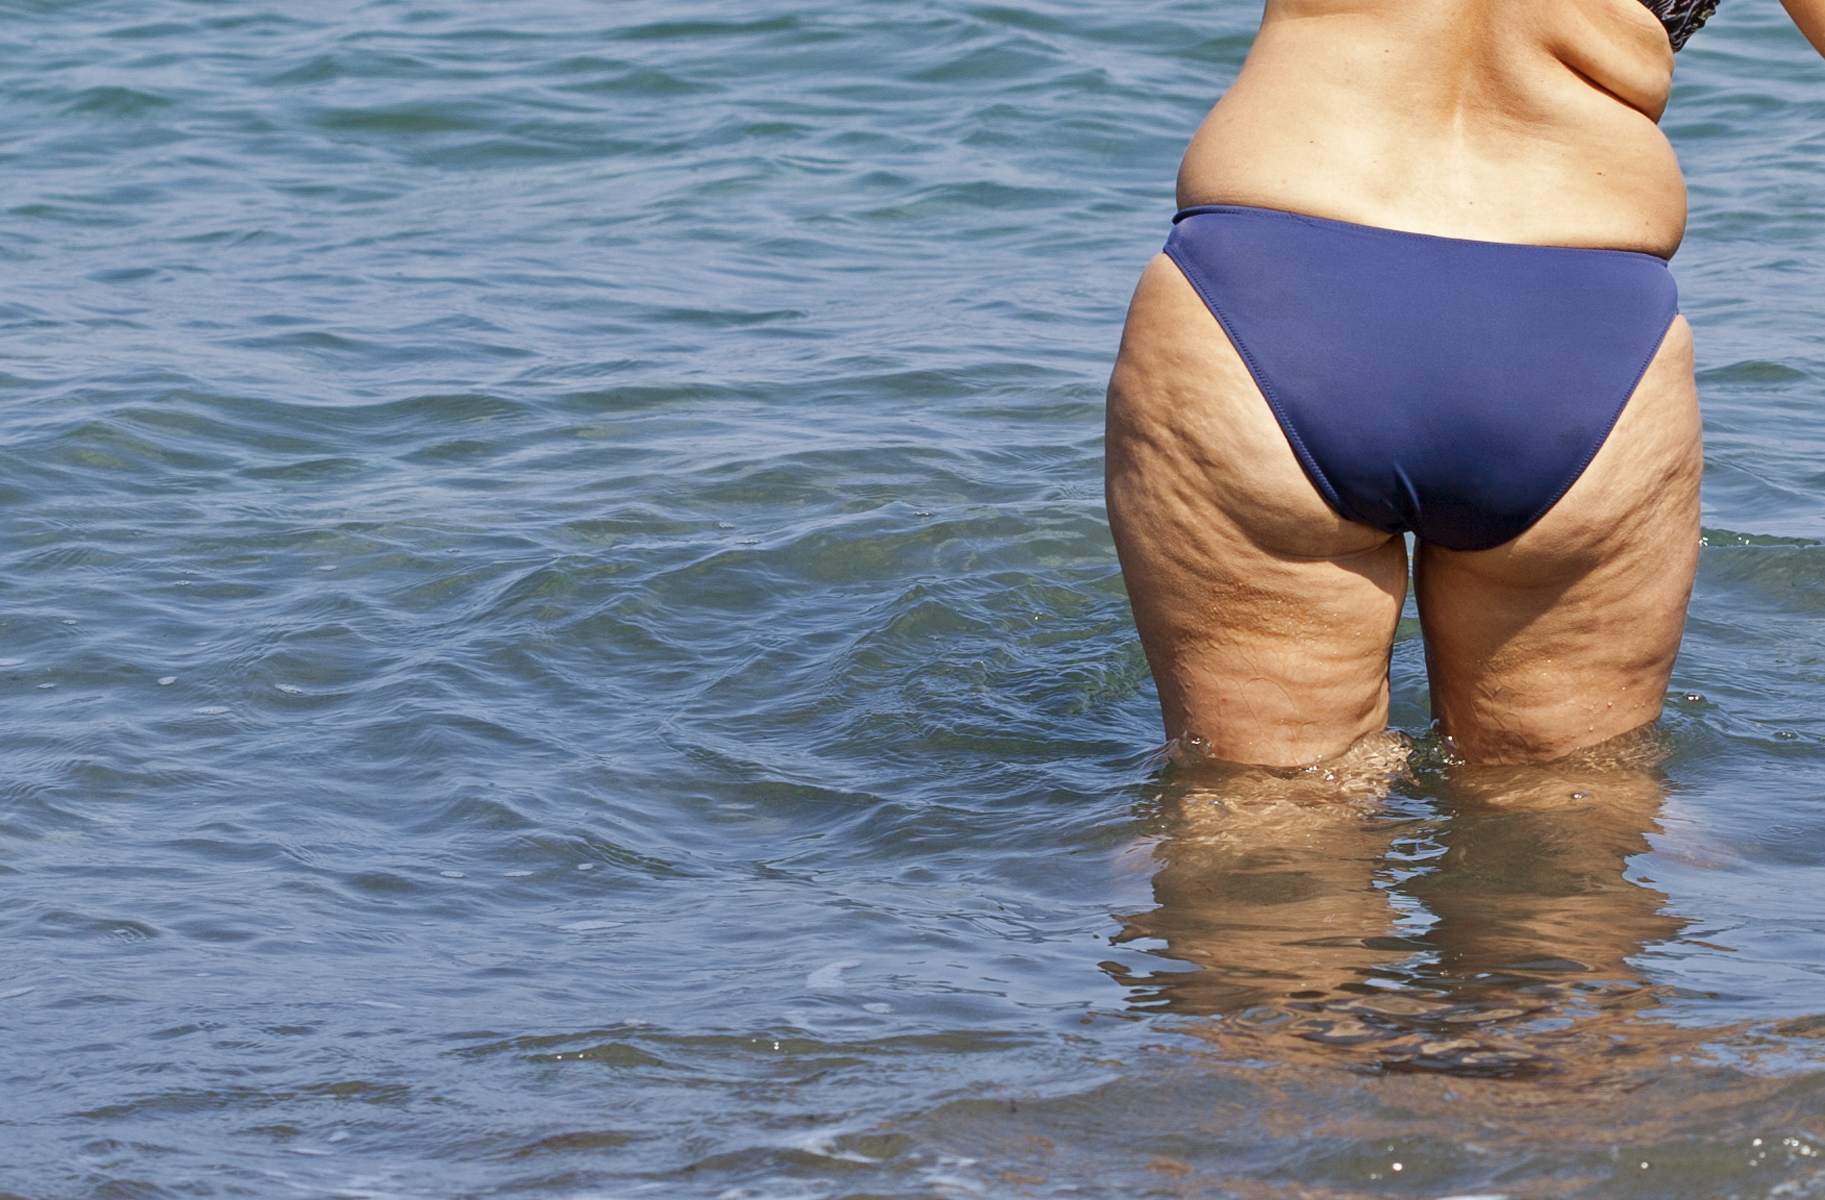 The Best Cellulite Treatment Learning They Asbolutely Do Not Work